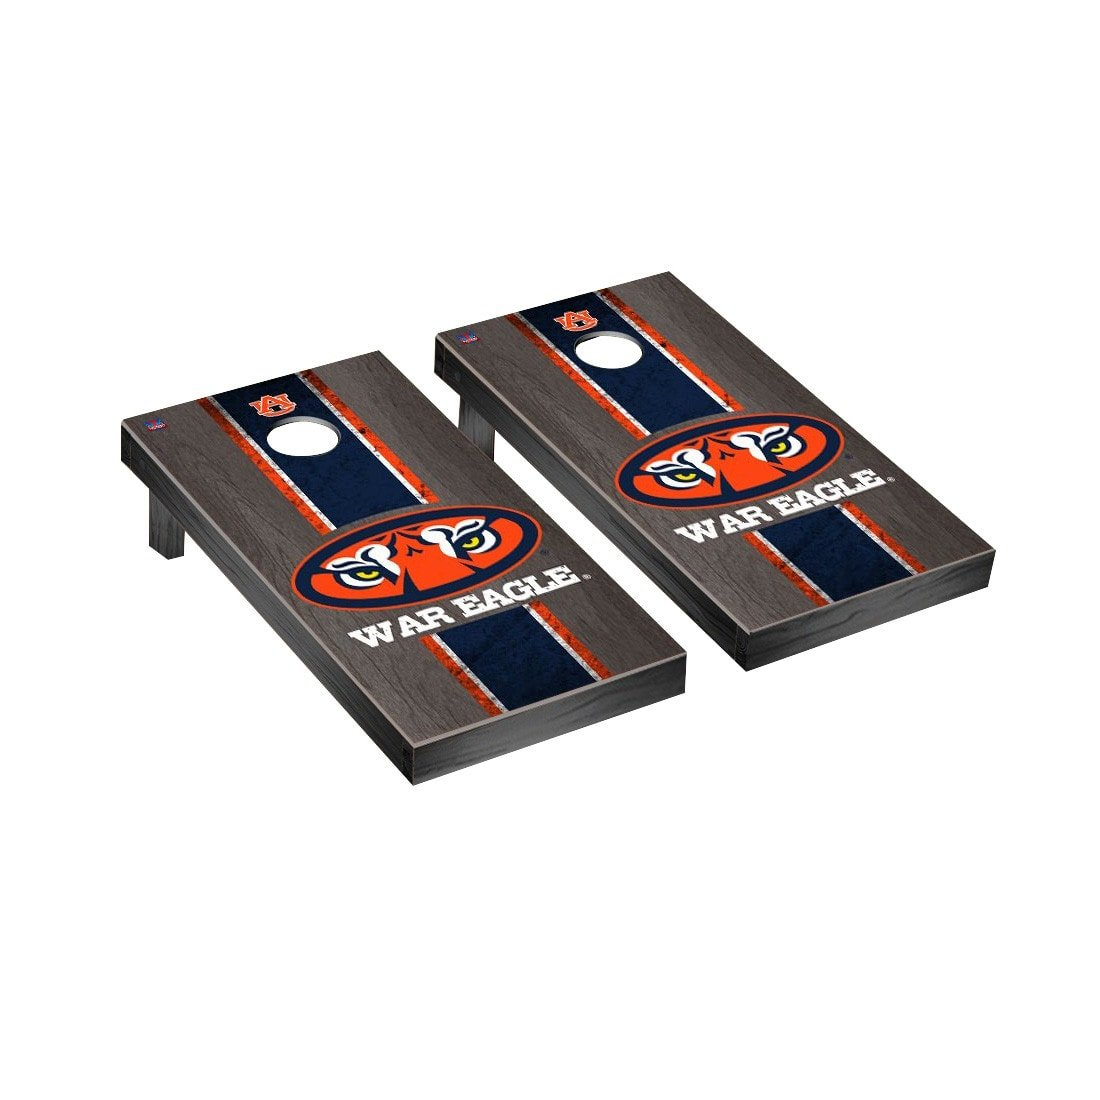 Victory Tailgate Auburn Tigers Regulation Cornhole Game Set Onyx Stained War Eagle Version